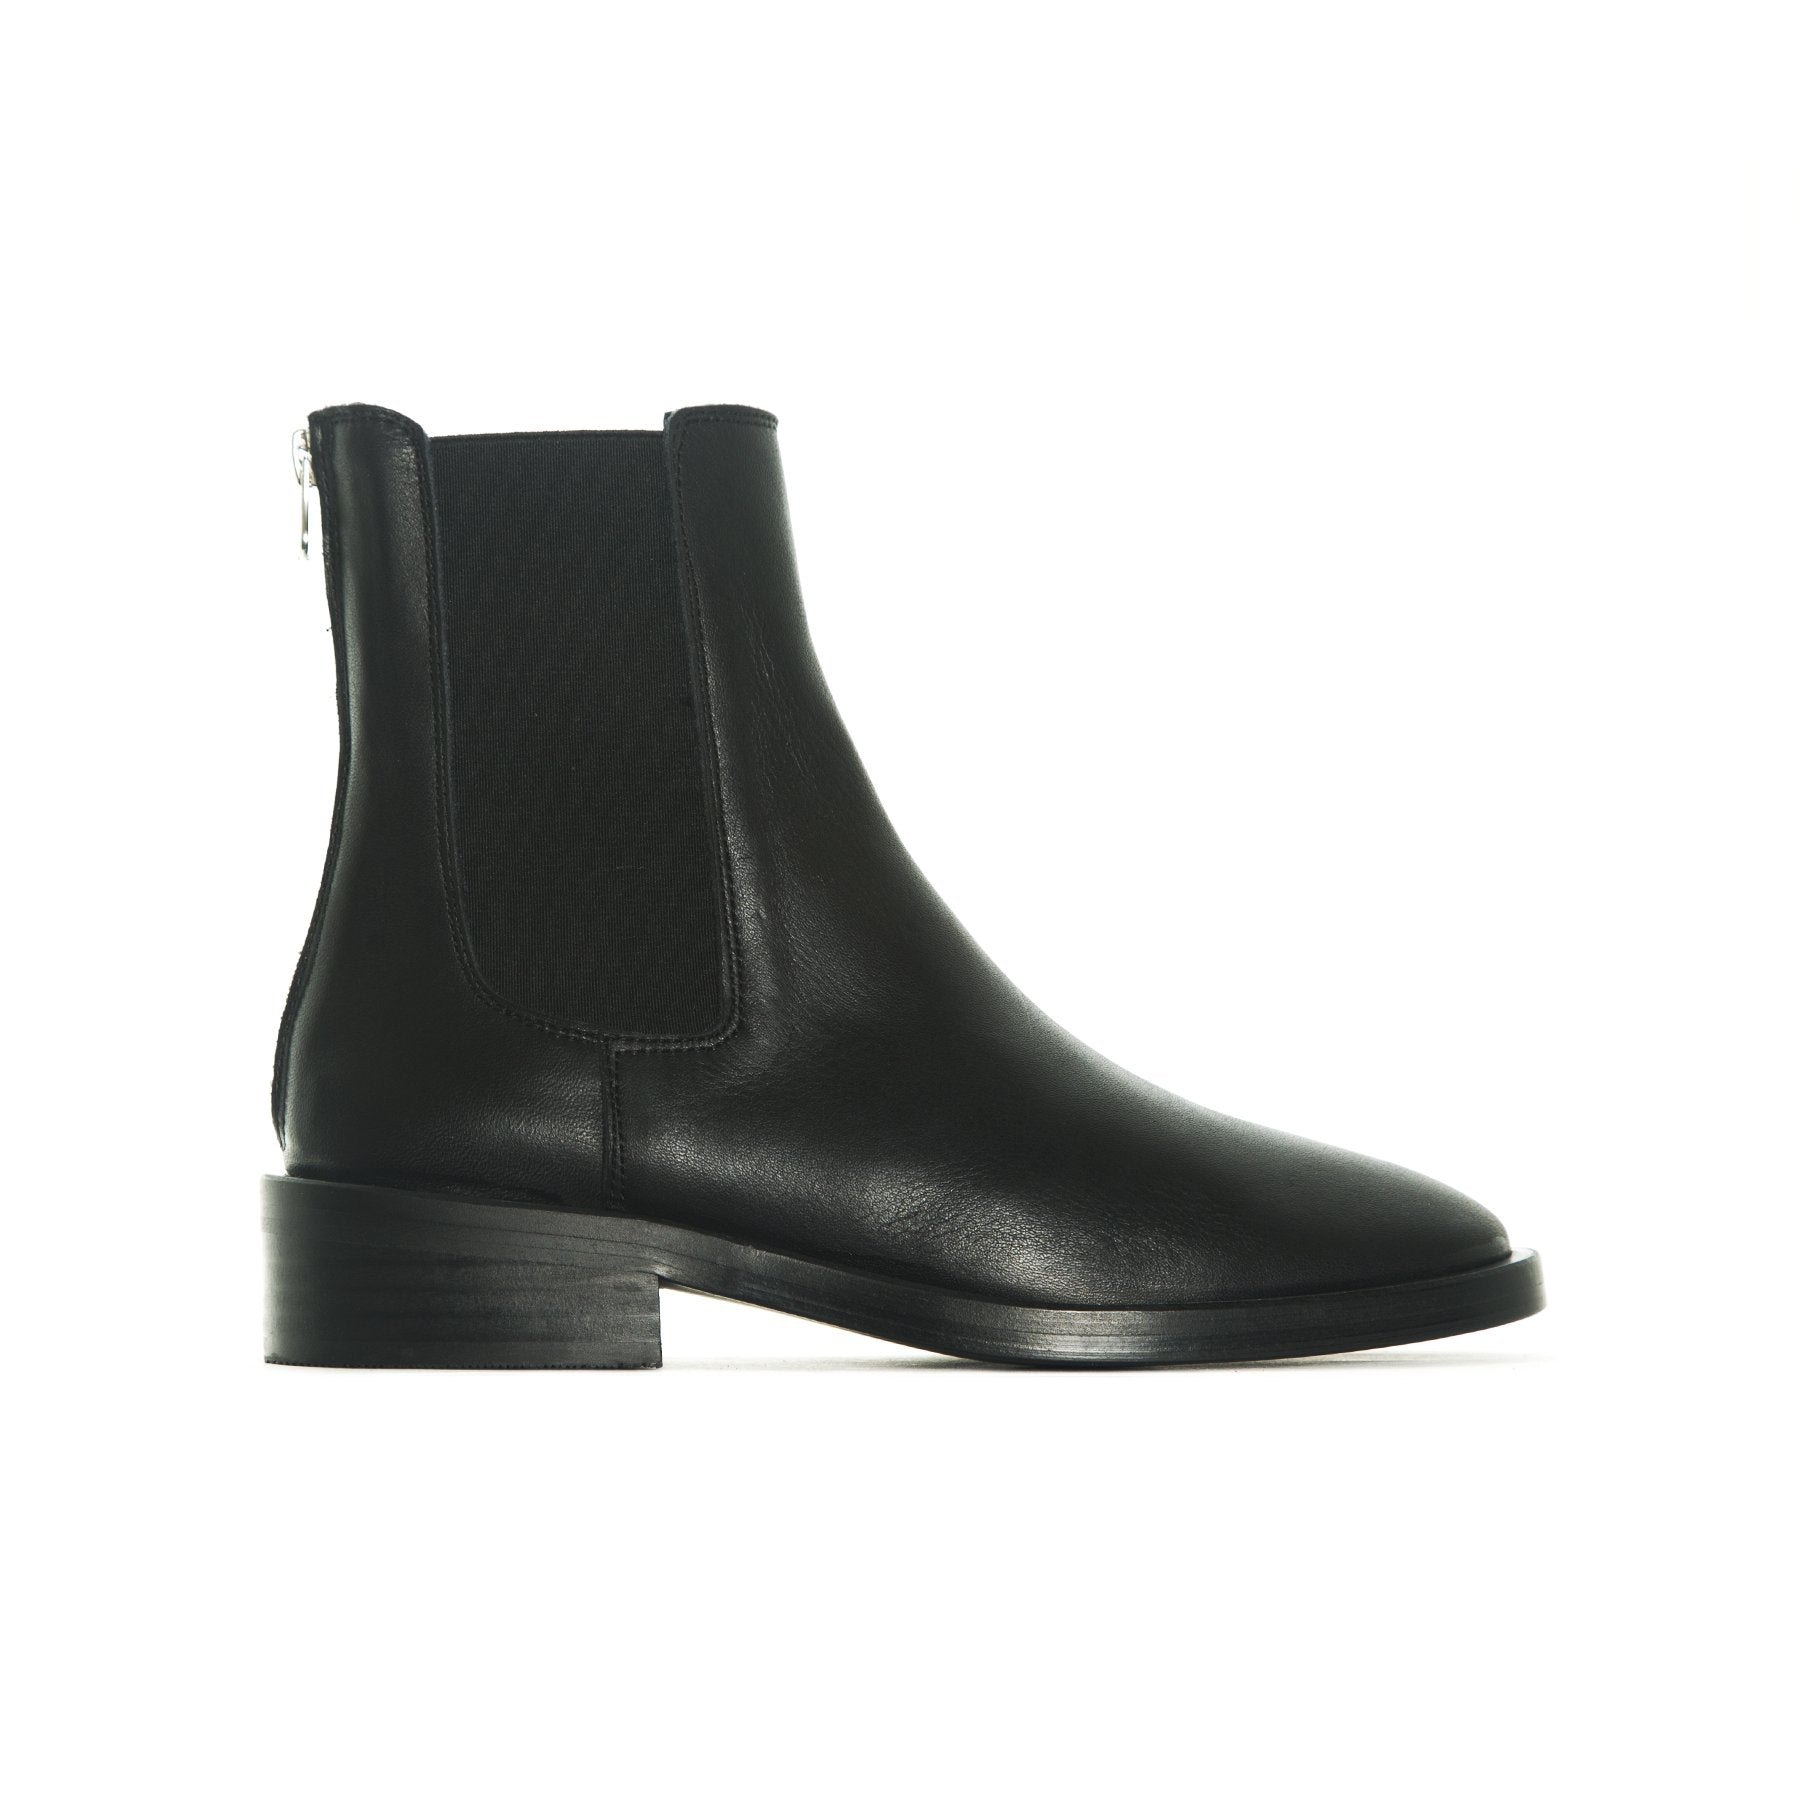 Halifax Black Leather Boots